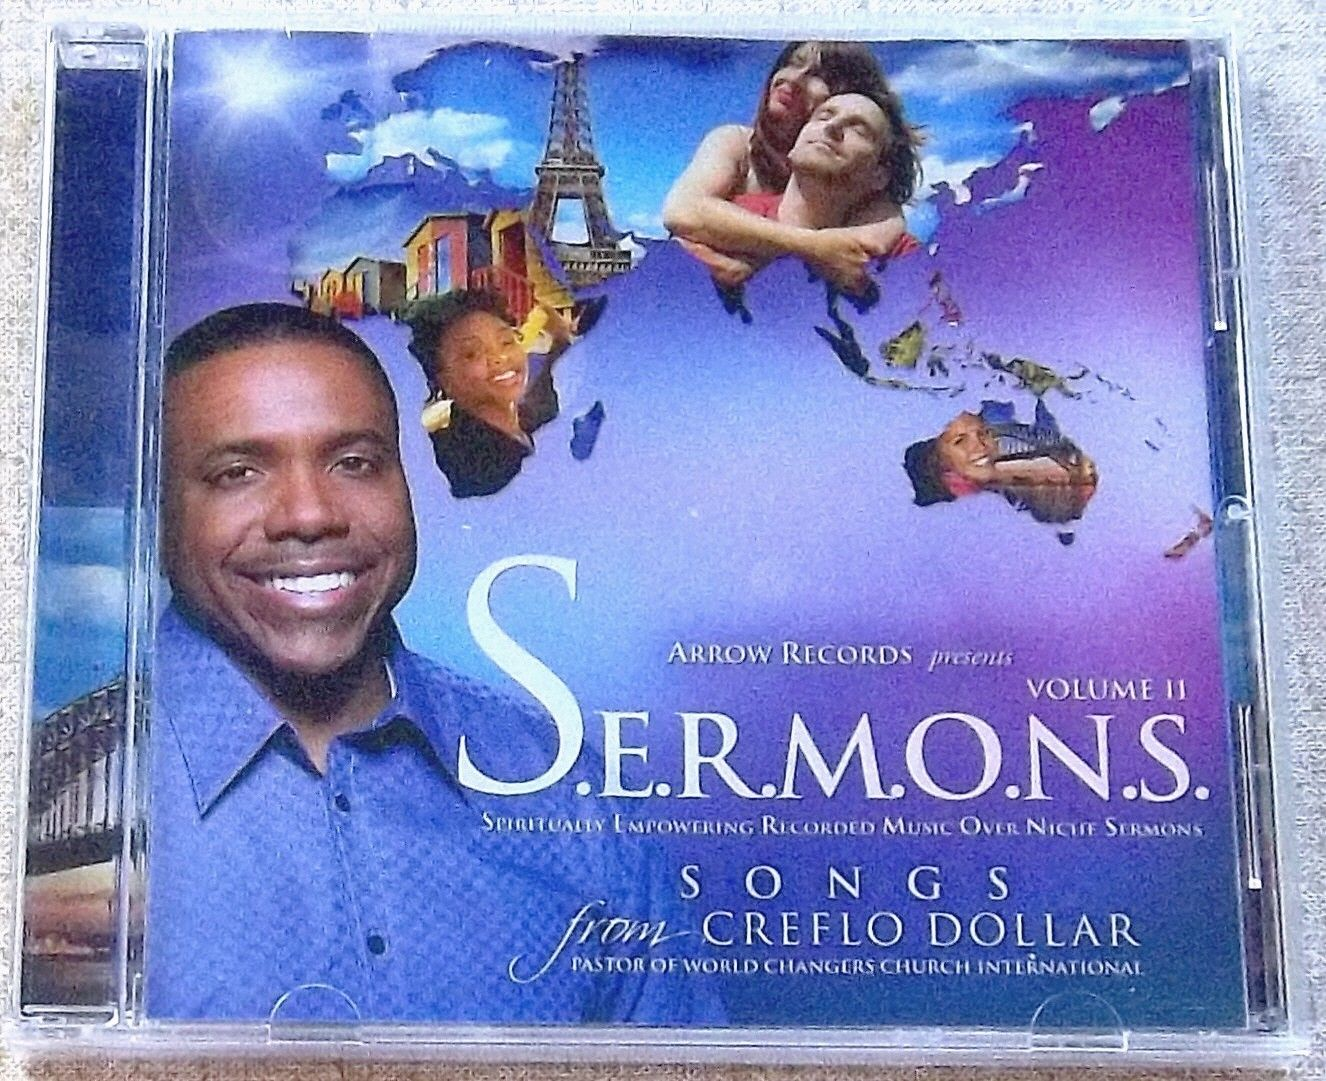 creflo dollar dating sermon Find album reviews, stream songs, credits and award information for sermons songs, vol 2: god's love - creflo dollar on allmusic.